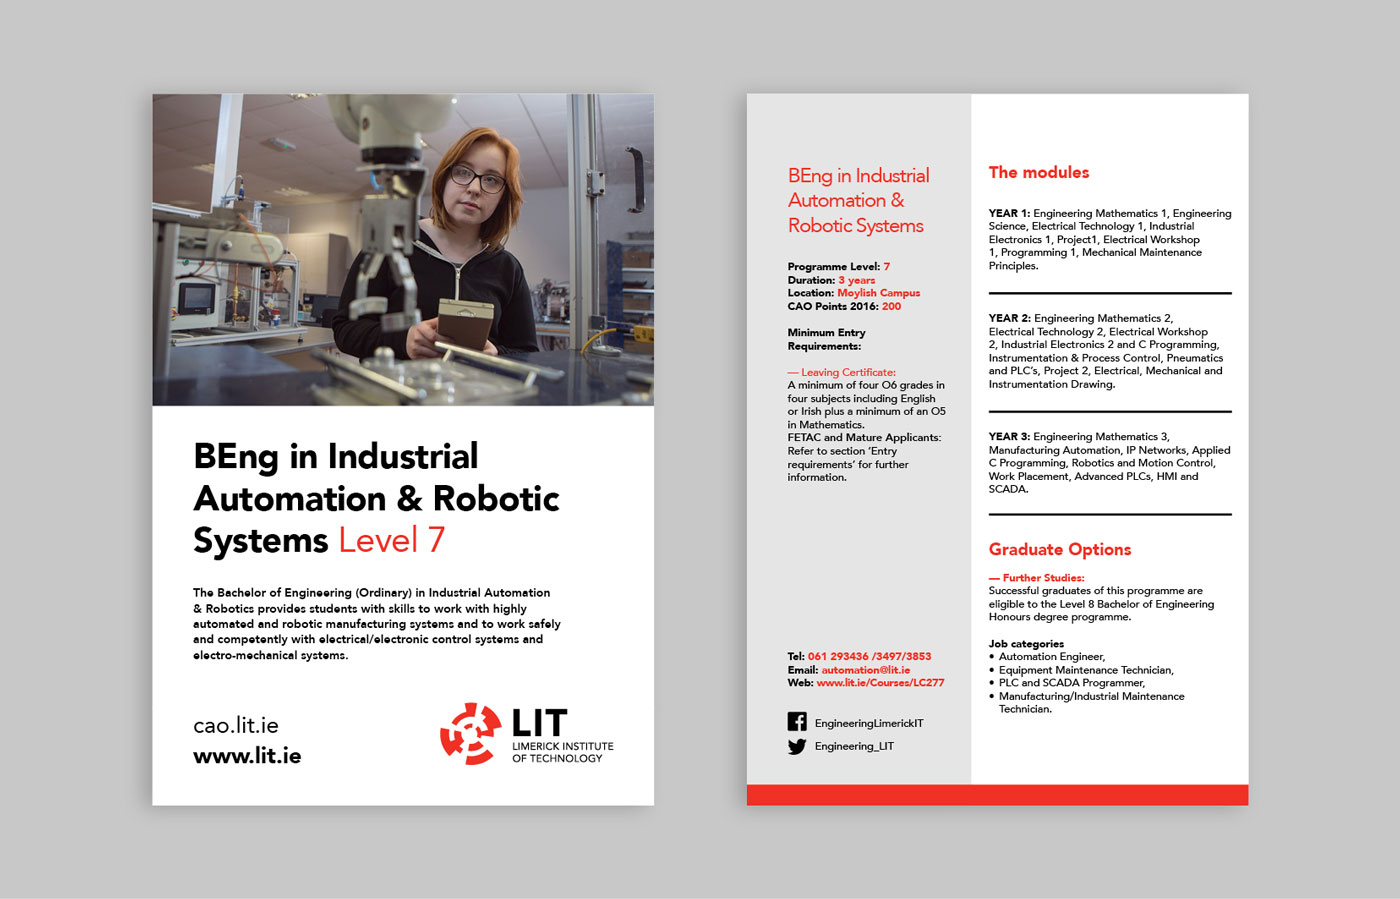 LIT Electrical and Electronic Engineering brochure design featuring details on the BEng in Industrial Automation & Robotic Systems course.